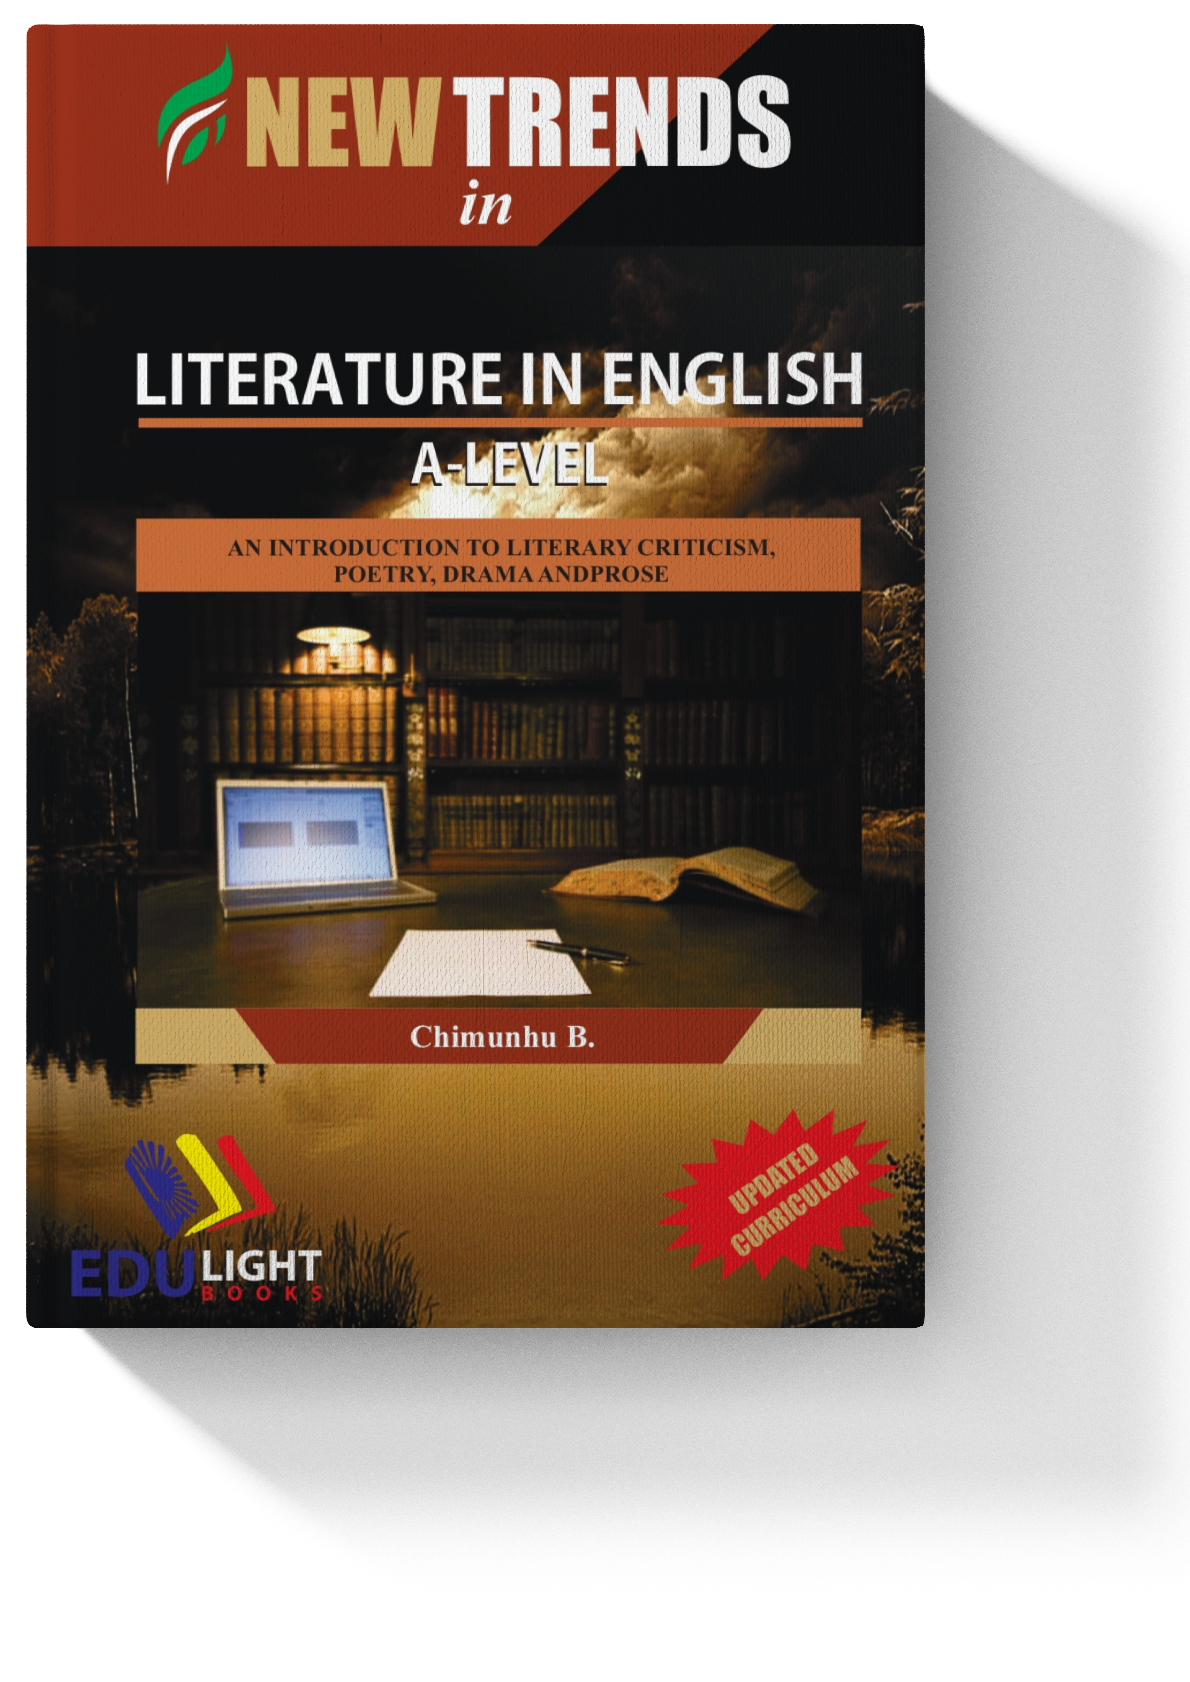 LITERATURE IN ENGLISH A LEVEL COVER_page-0001